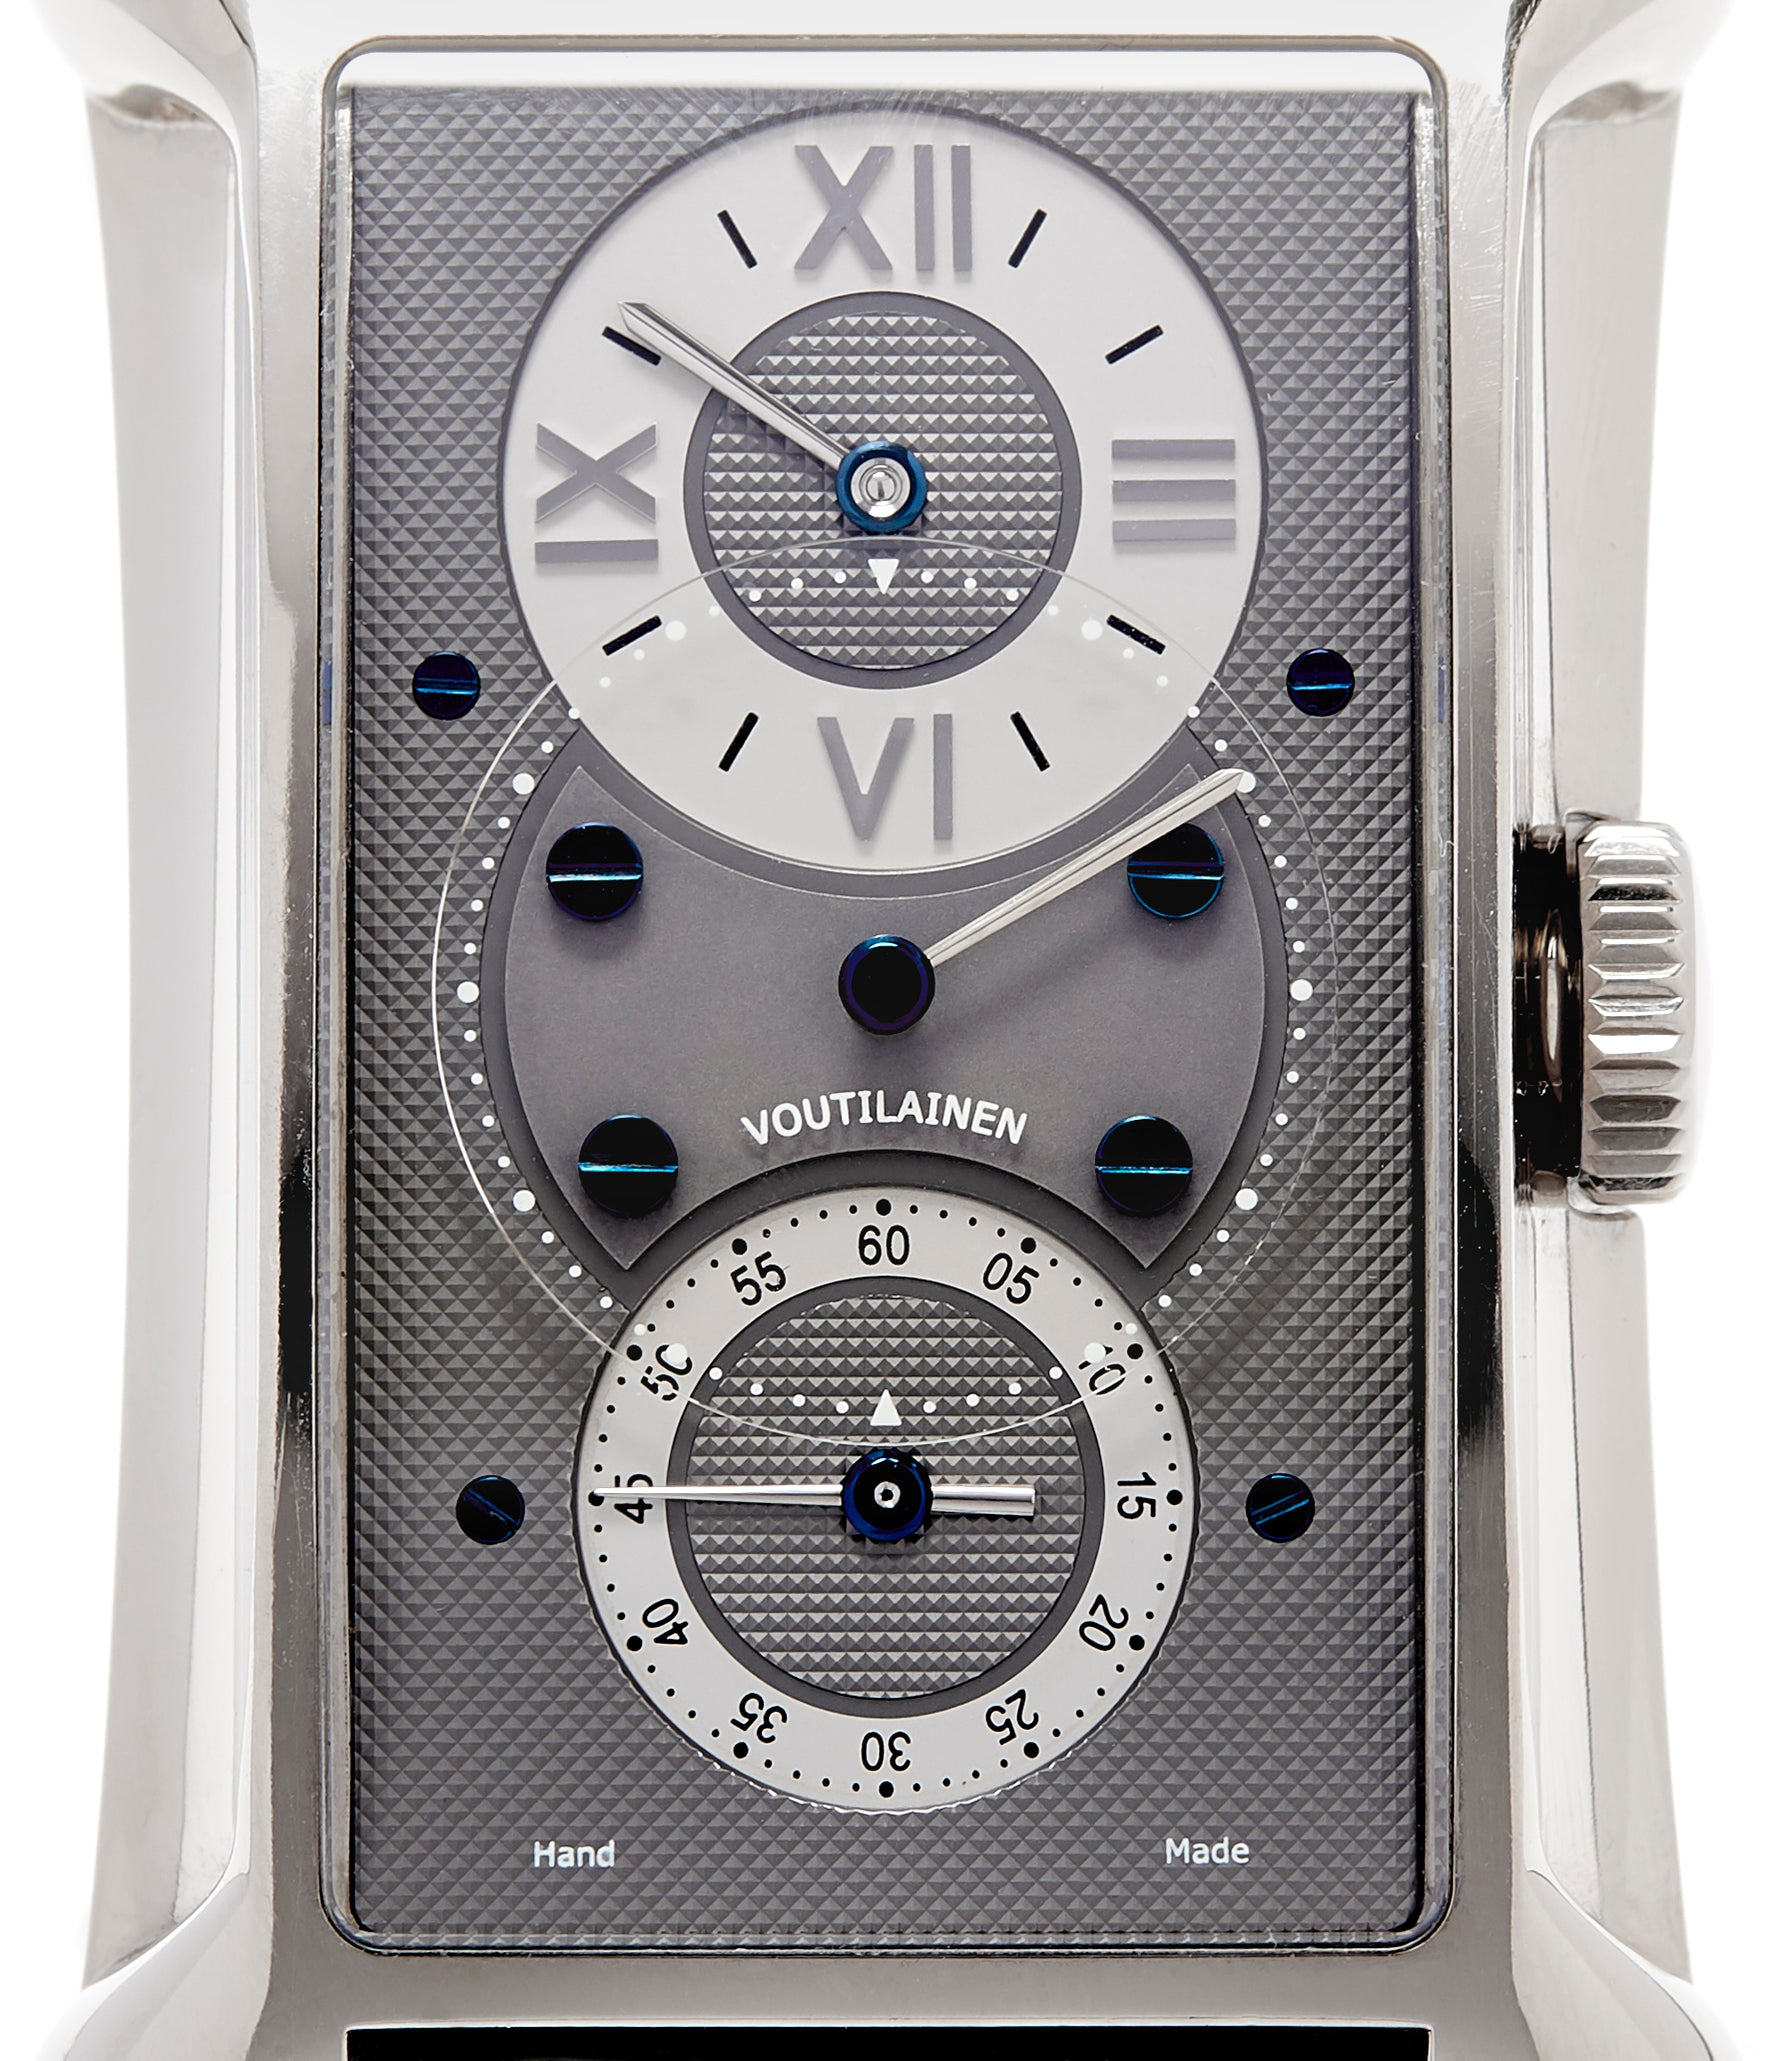 grey dial Voutilainen 27 Chronometre white gold Limited Edition white gold watch by Kari Voutilainen for sale online at approved re-seller A Collected Man London UK specialist of rare watches